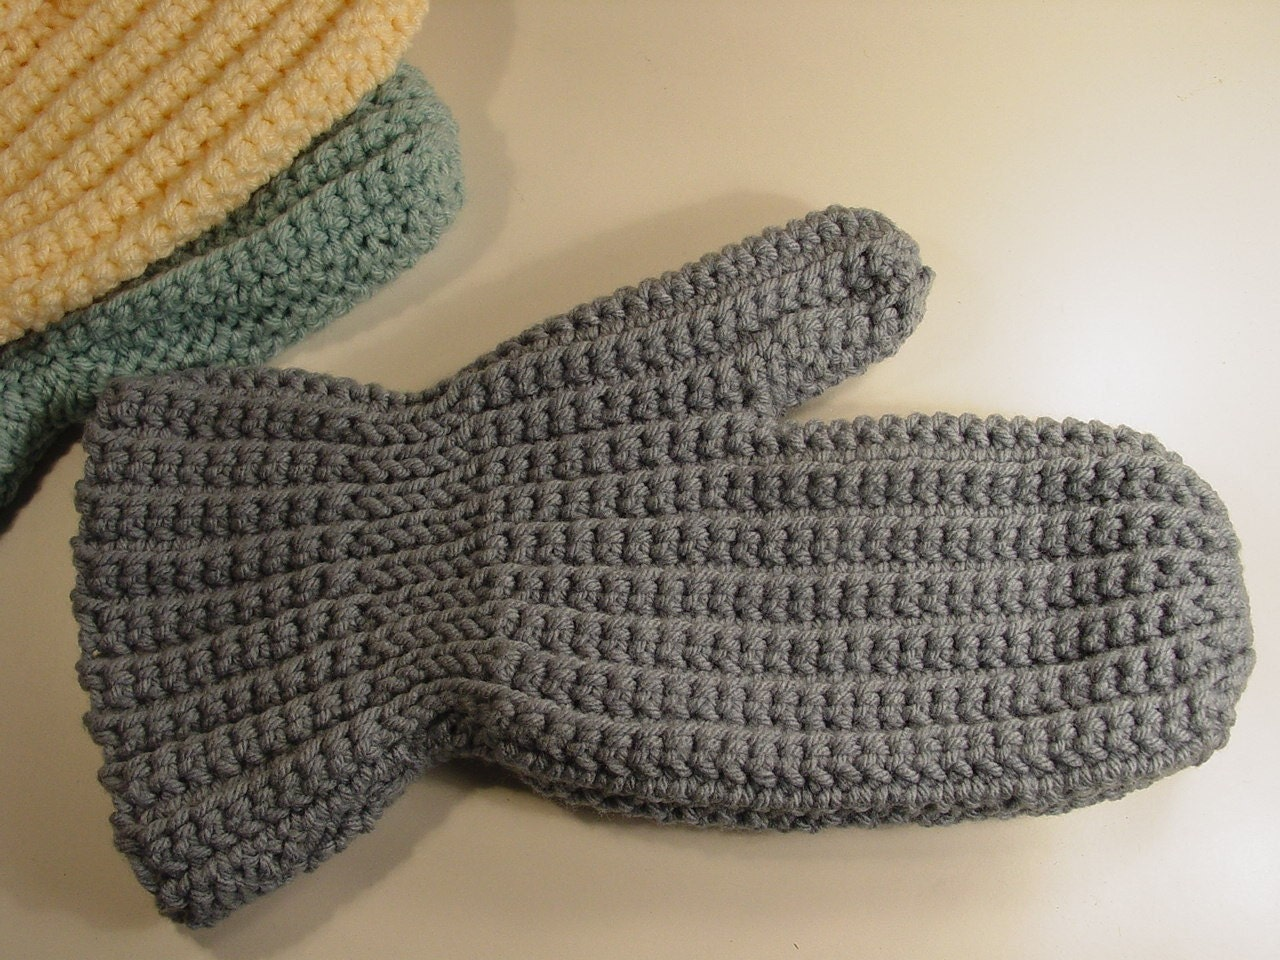 Crocheting Mittens For Beginners : Easy Sideways Crochet Mittens Pattern pdf by madcowdog on Etsy